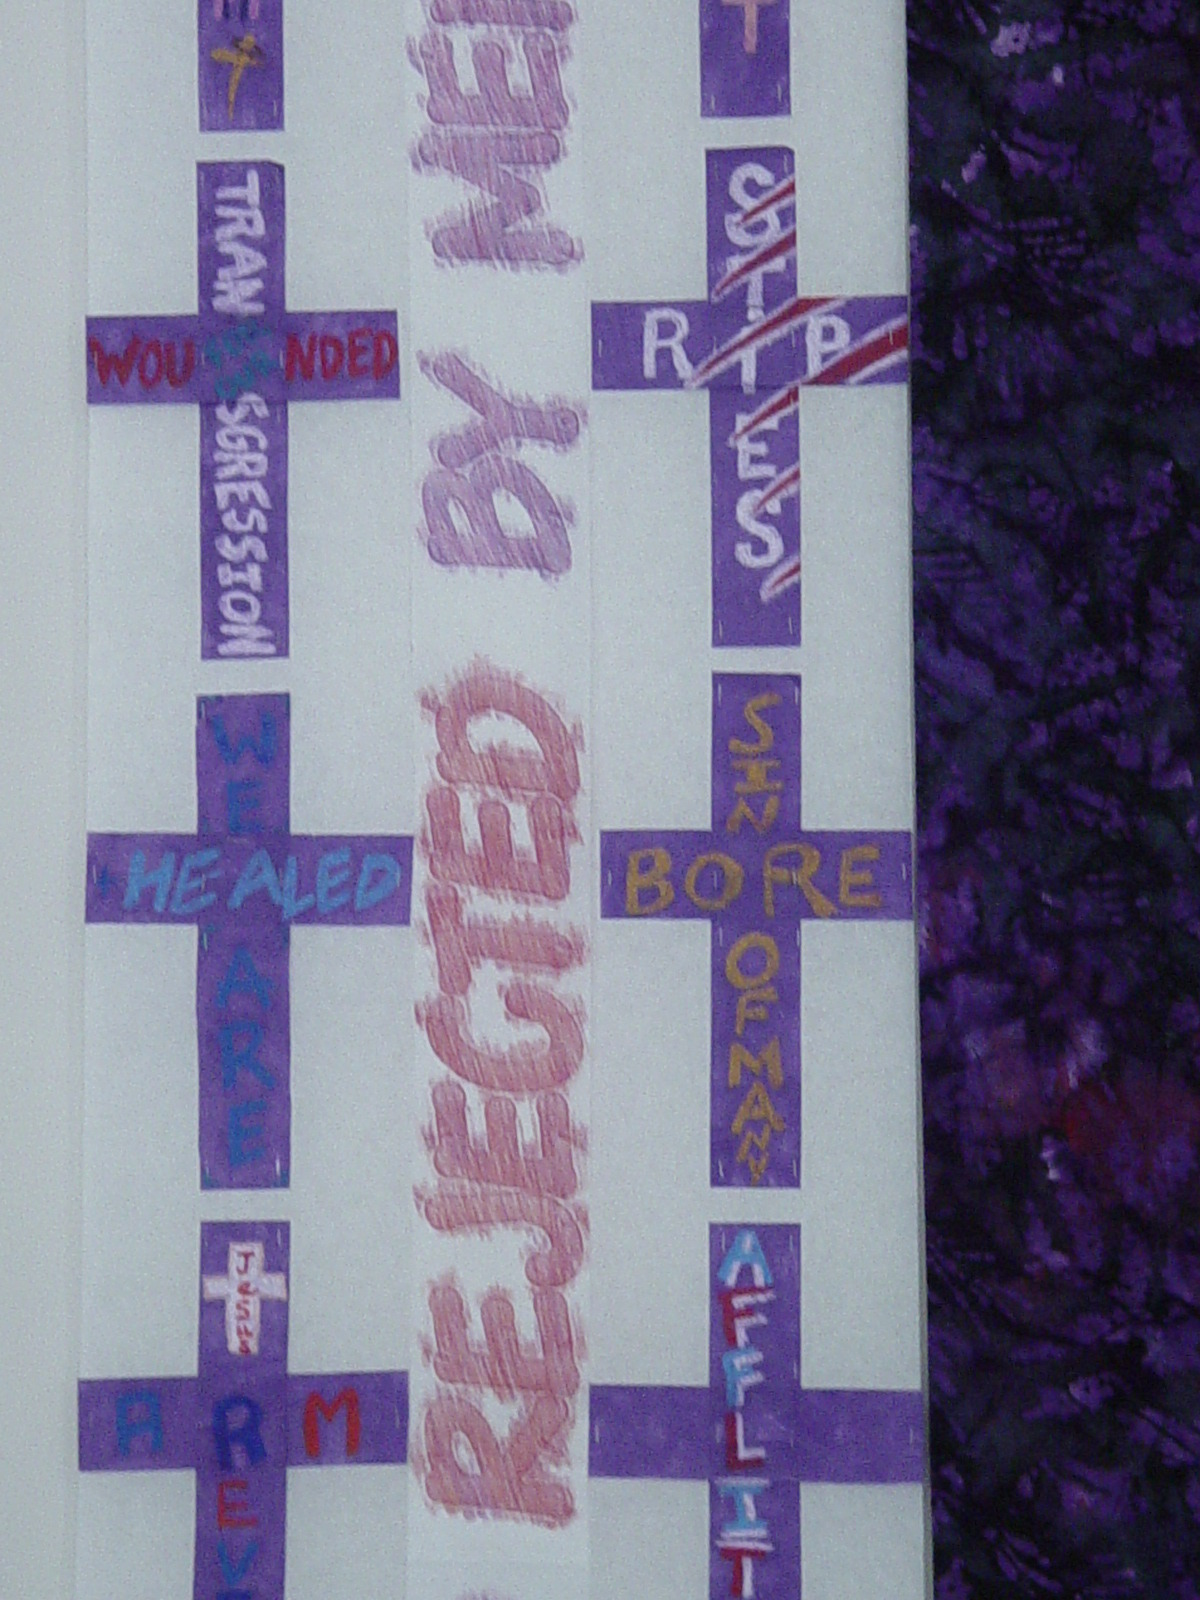 Detail, Isaiah 53 community-made crosses